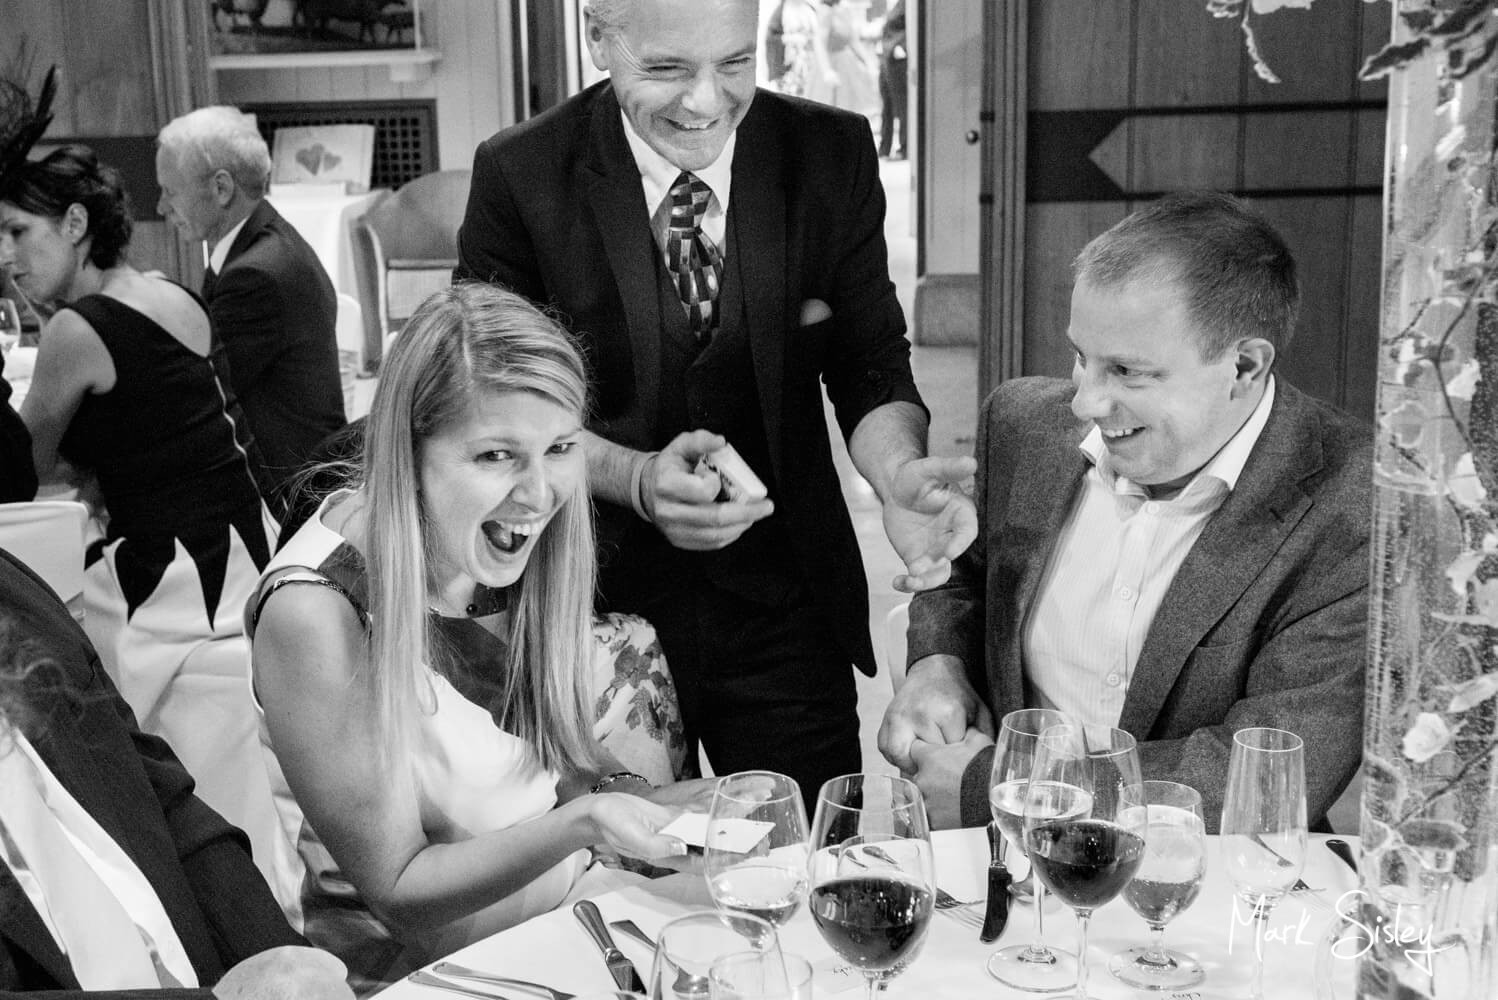 The Magician at work during this Dairy Waddesdon Scottish themed wedding